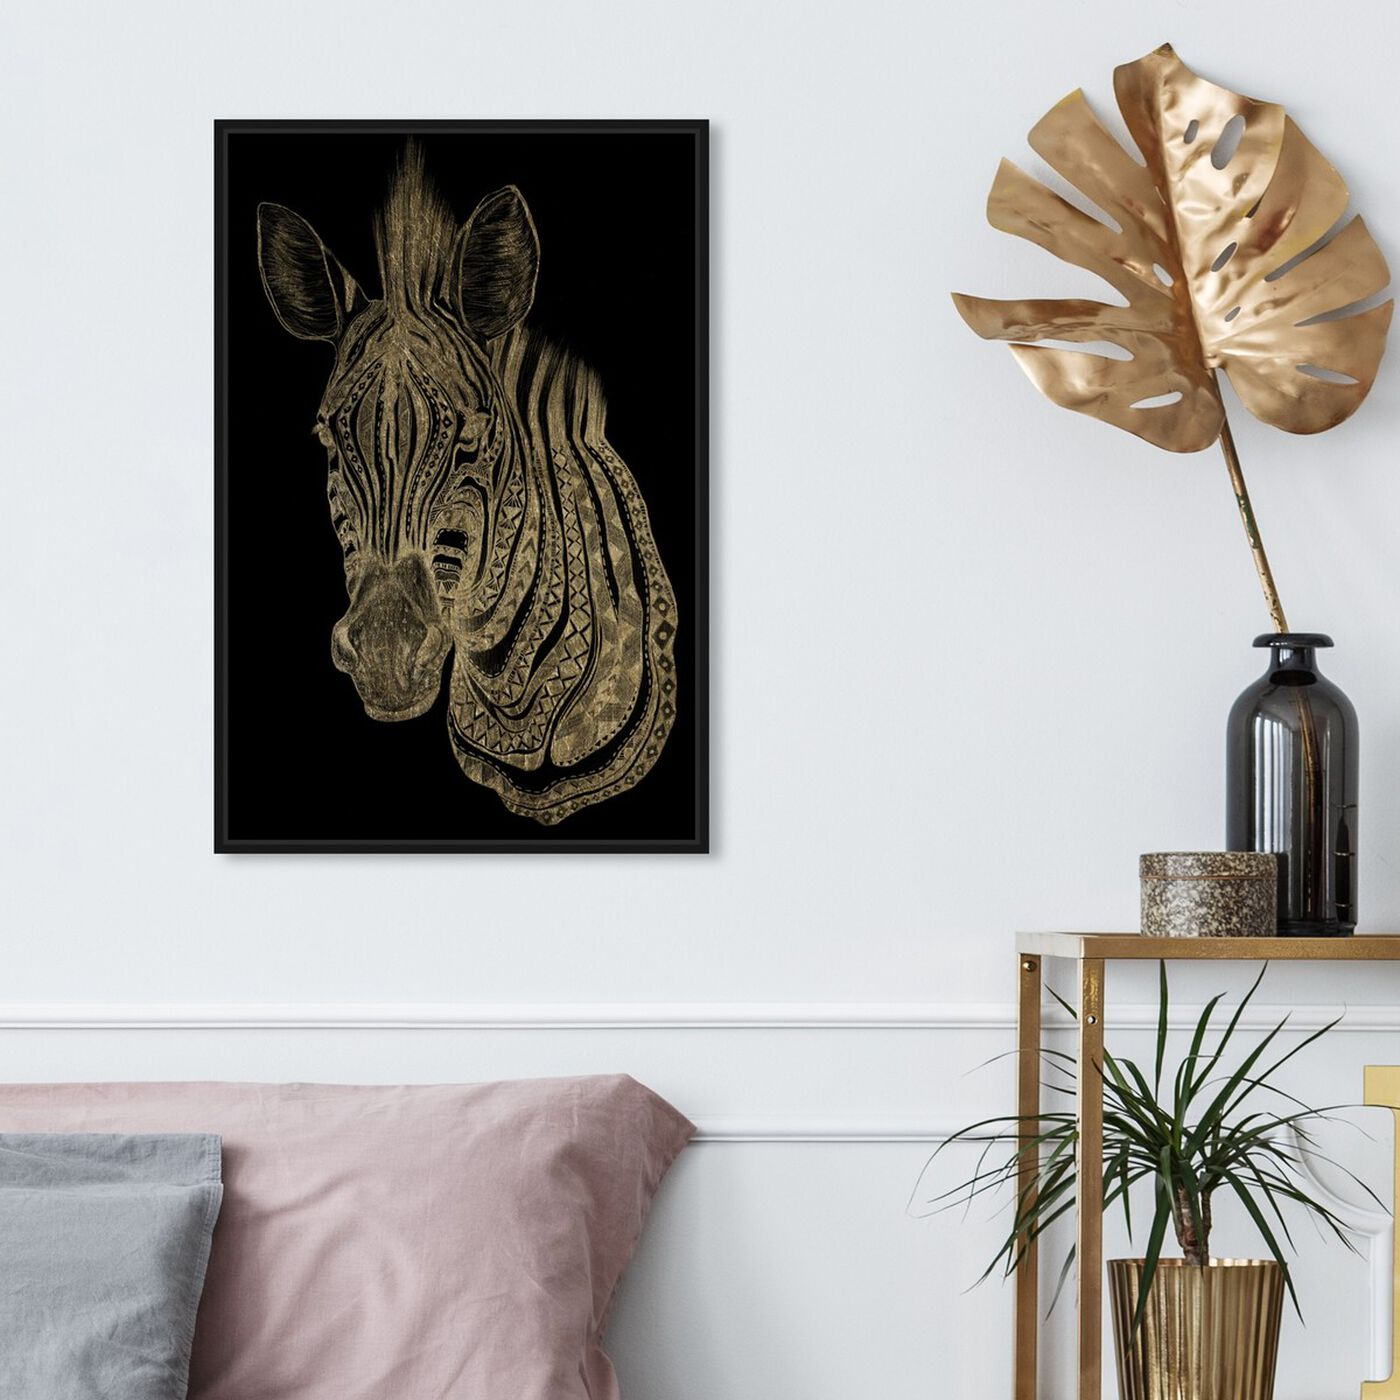 Hanging view of Zebra featuring animals and zoo and wild animals art.